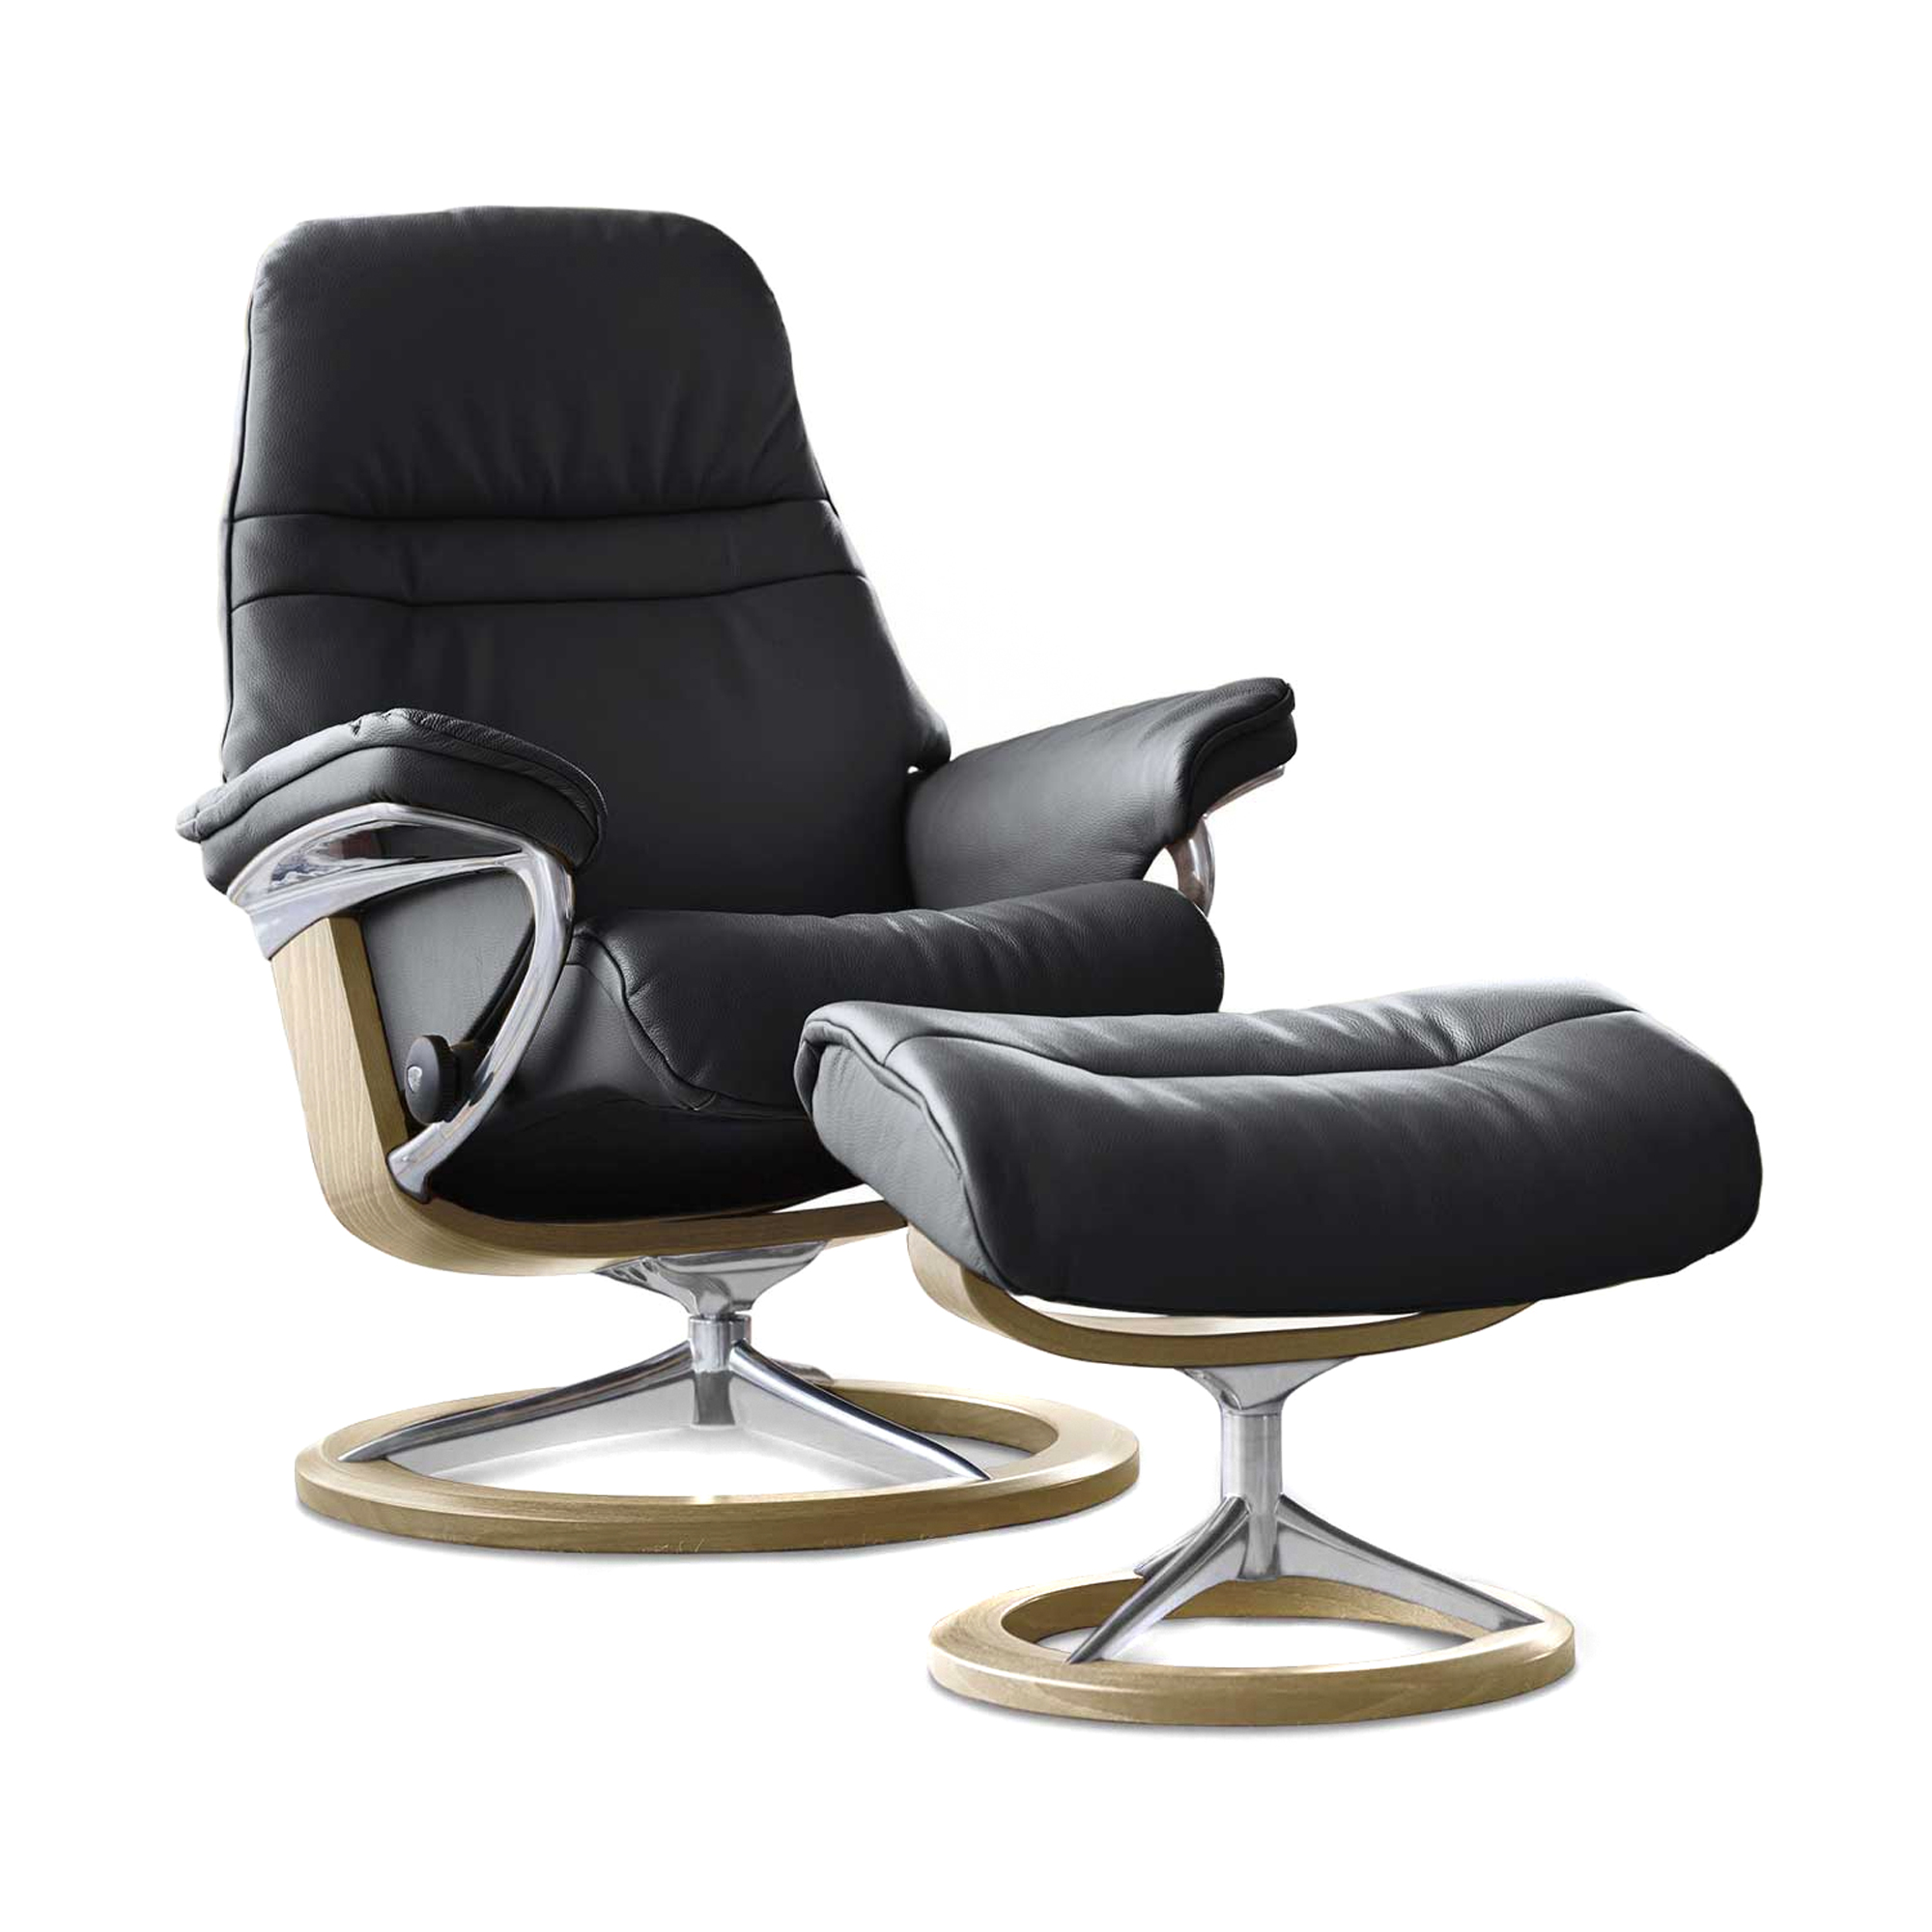 Sessel Sultan Stressless Sessel Sunrise M Möbel Preiss